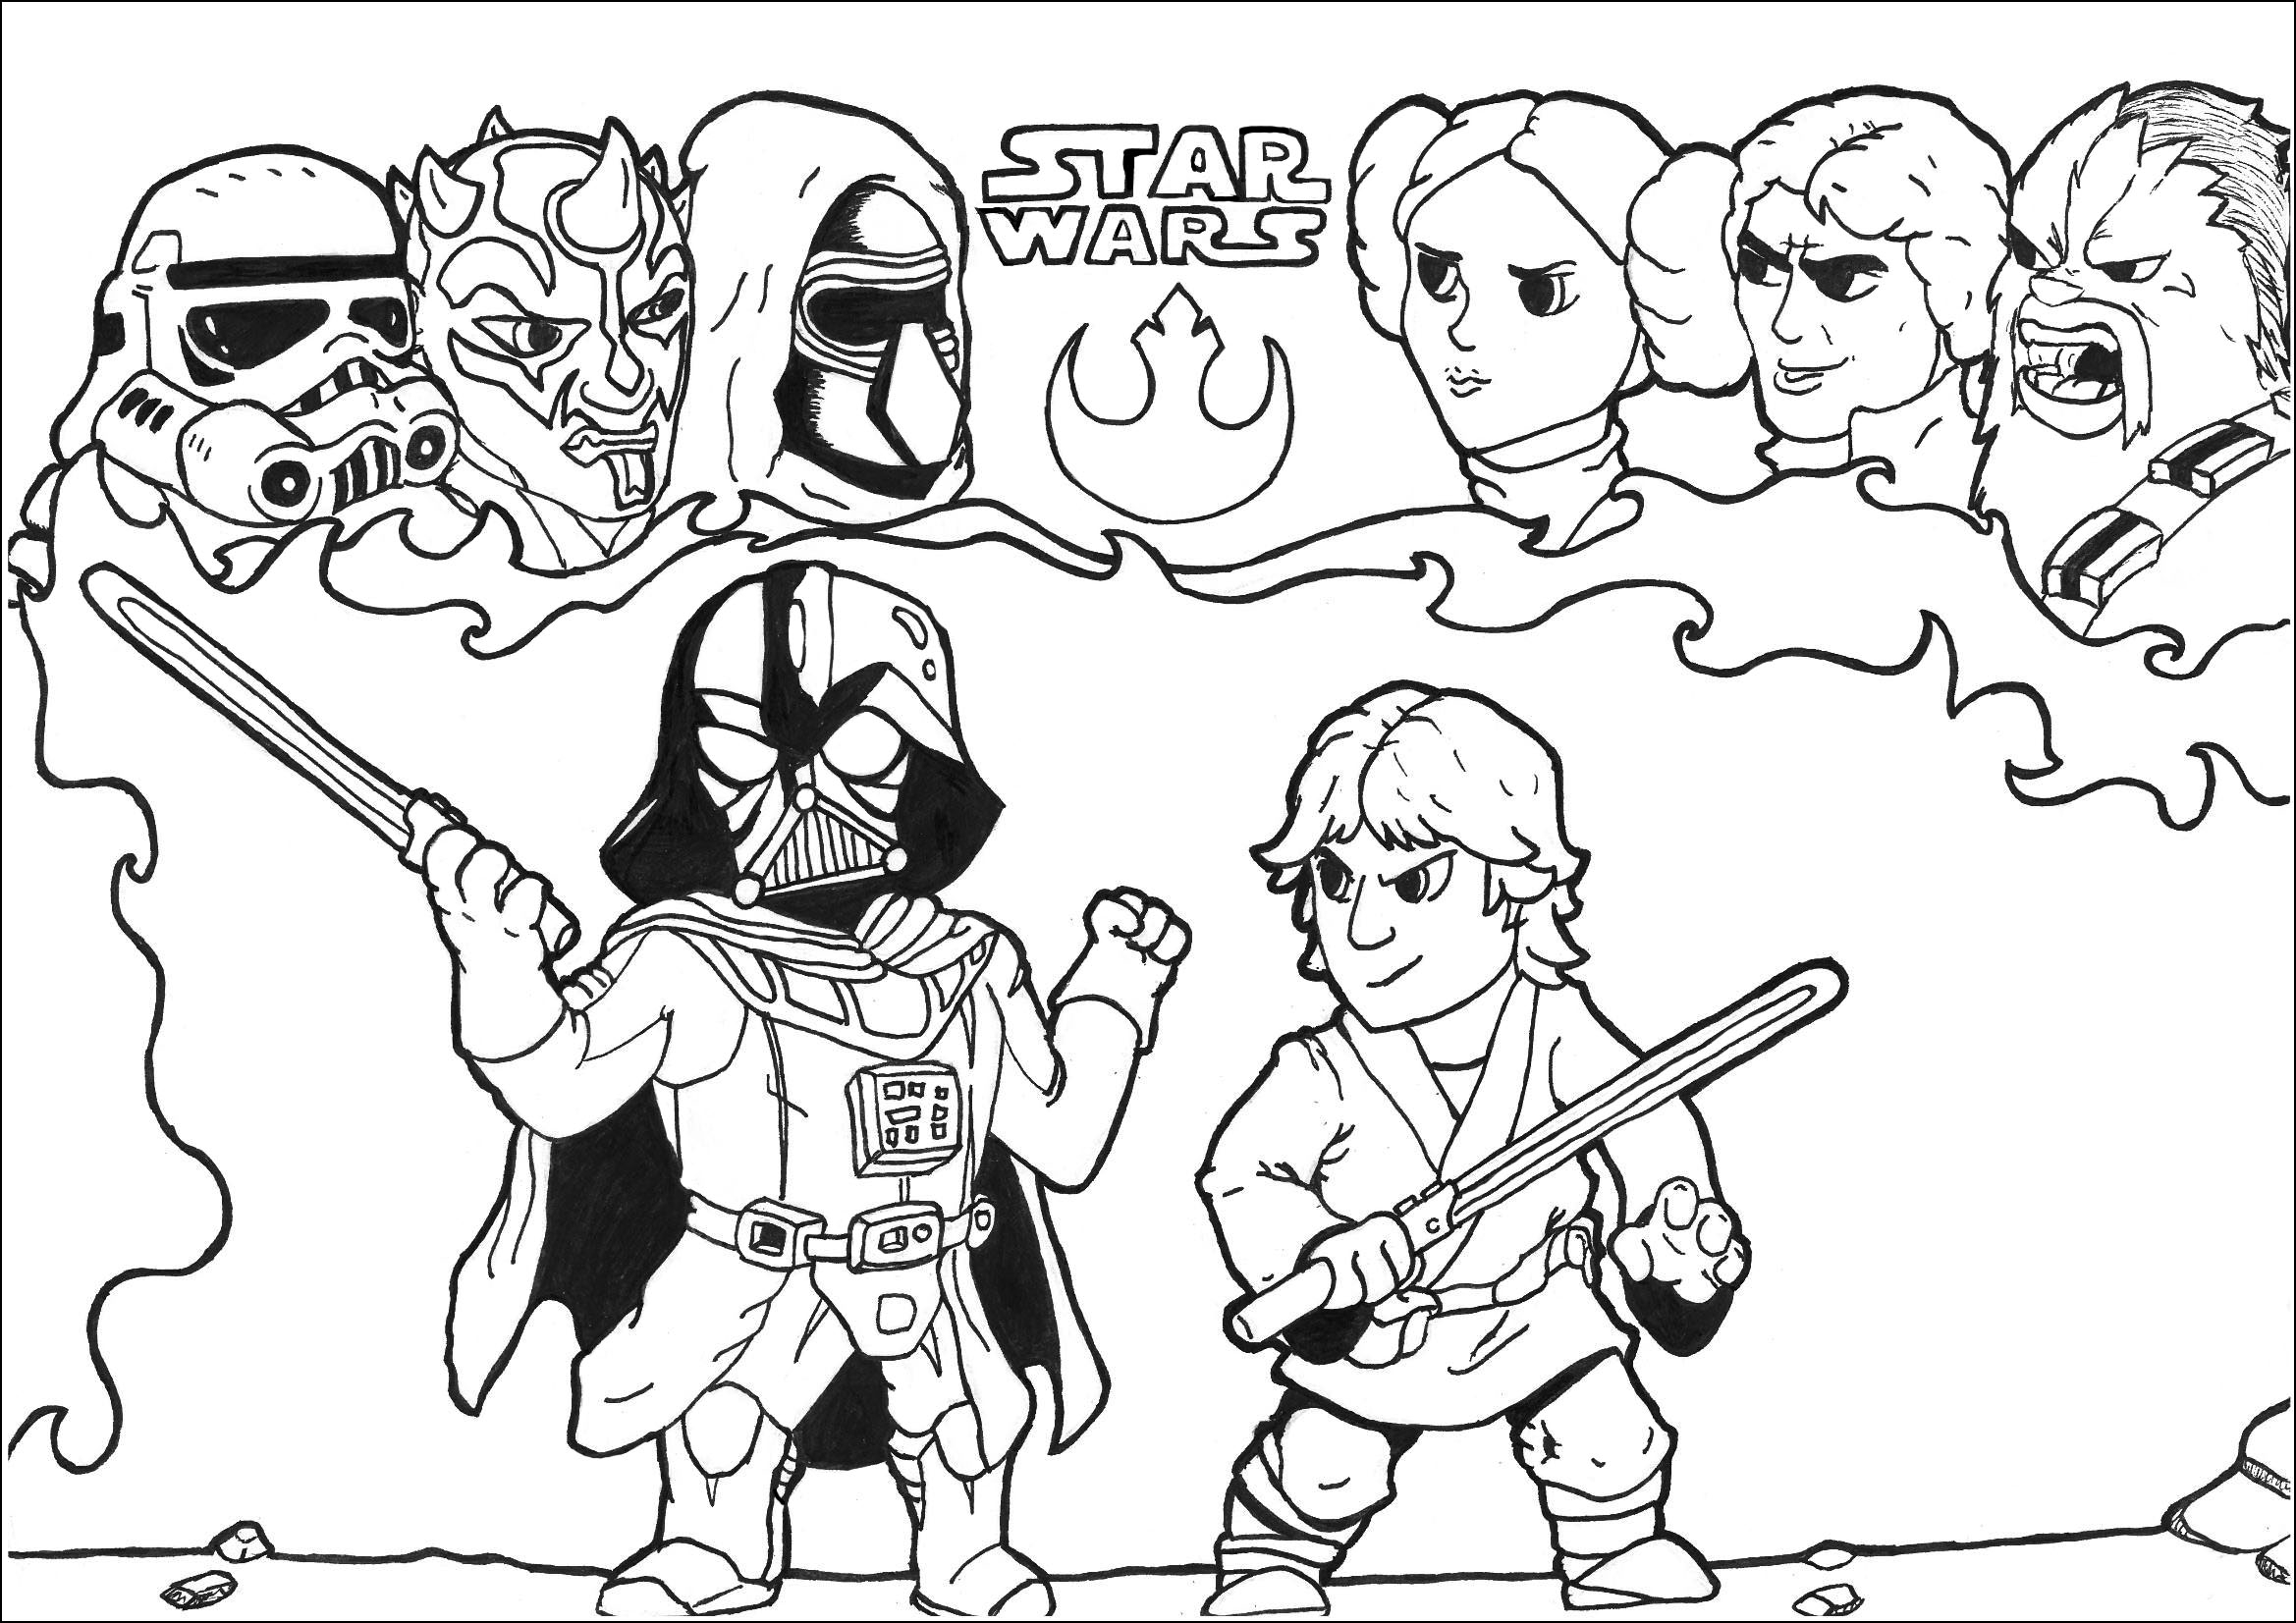 star wars the clone wars pictures to print star wars printable coloring pages hubpages the to wars pictures print wars clone star